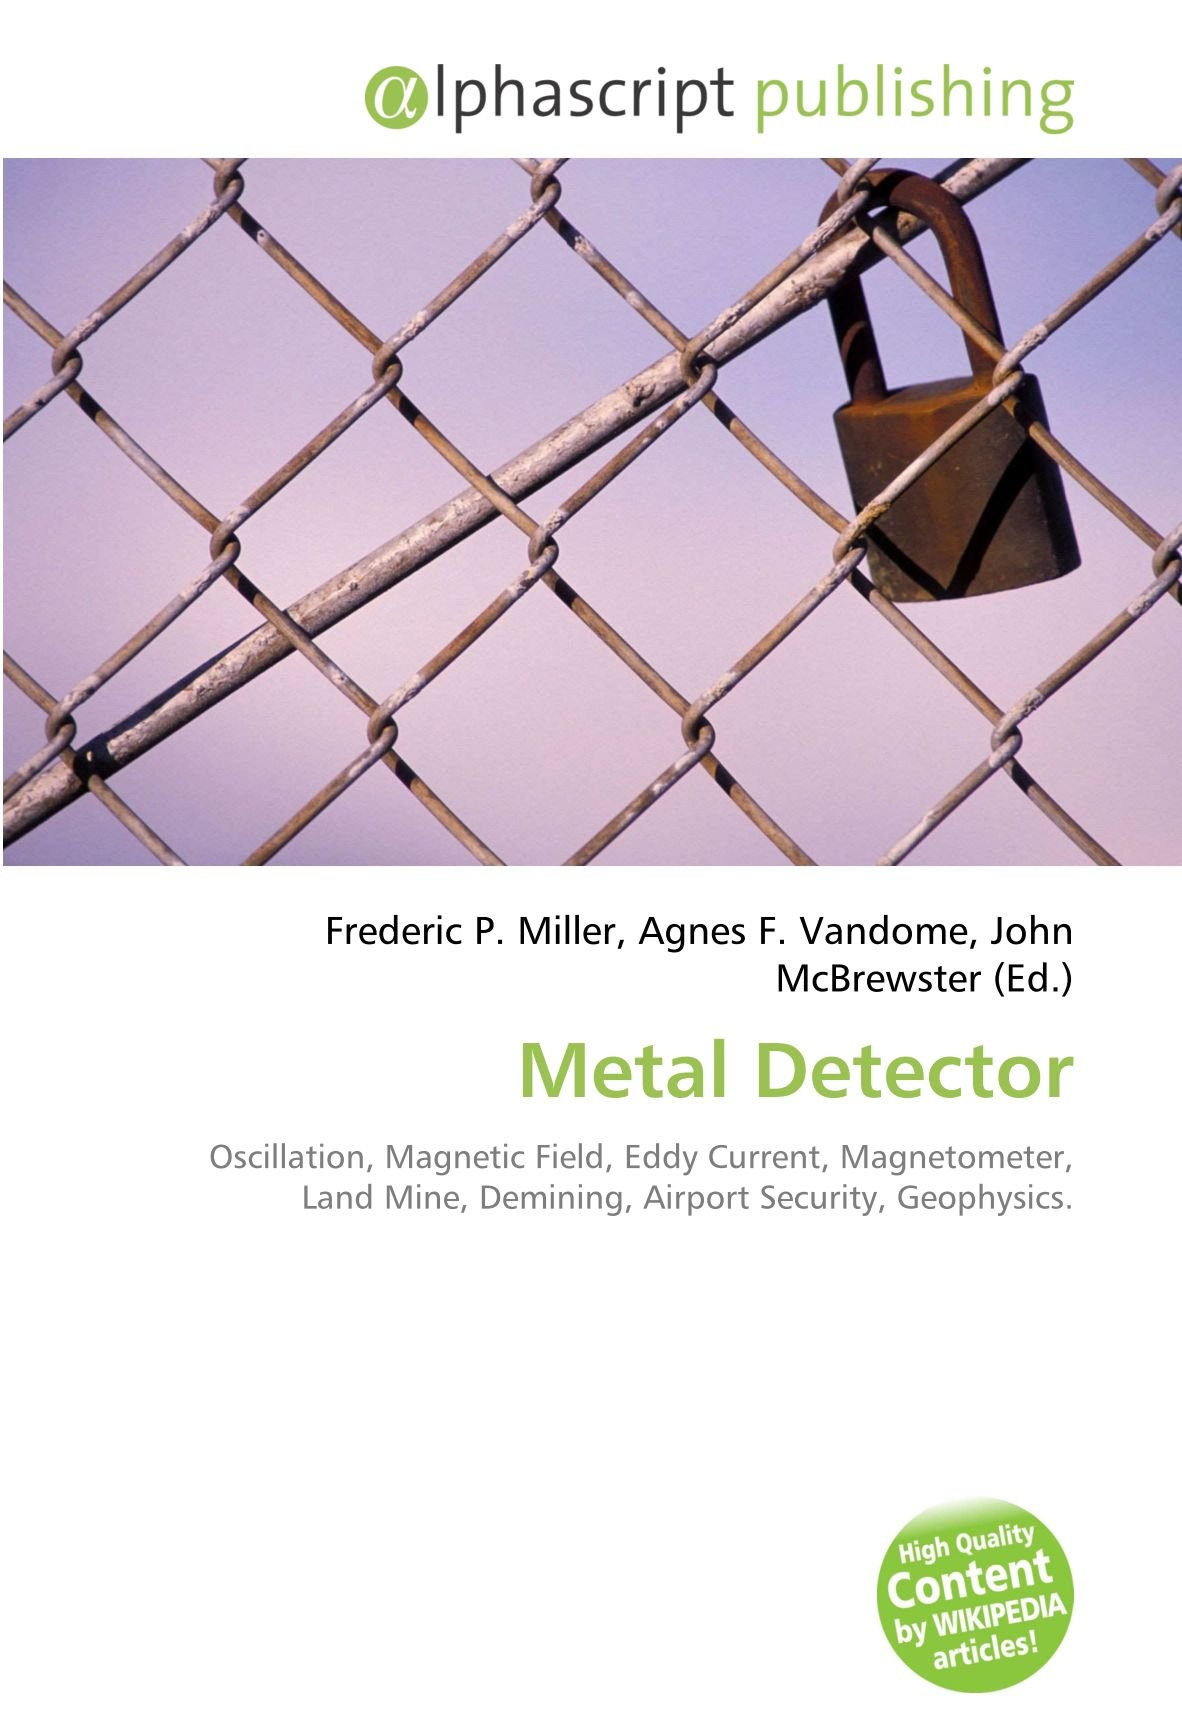 Metal Detector: Oscillation, Magnetic Field, Eddy Current, Magnetometer, Land Mine, Demining, Airport Security, Geophysics.: Amazon.es: Frederic P. Miller, ...